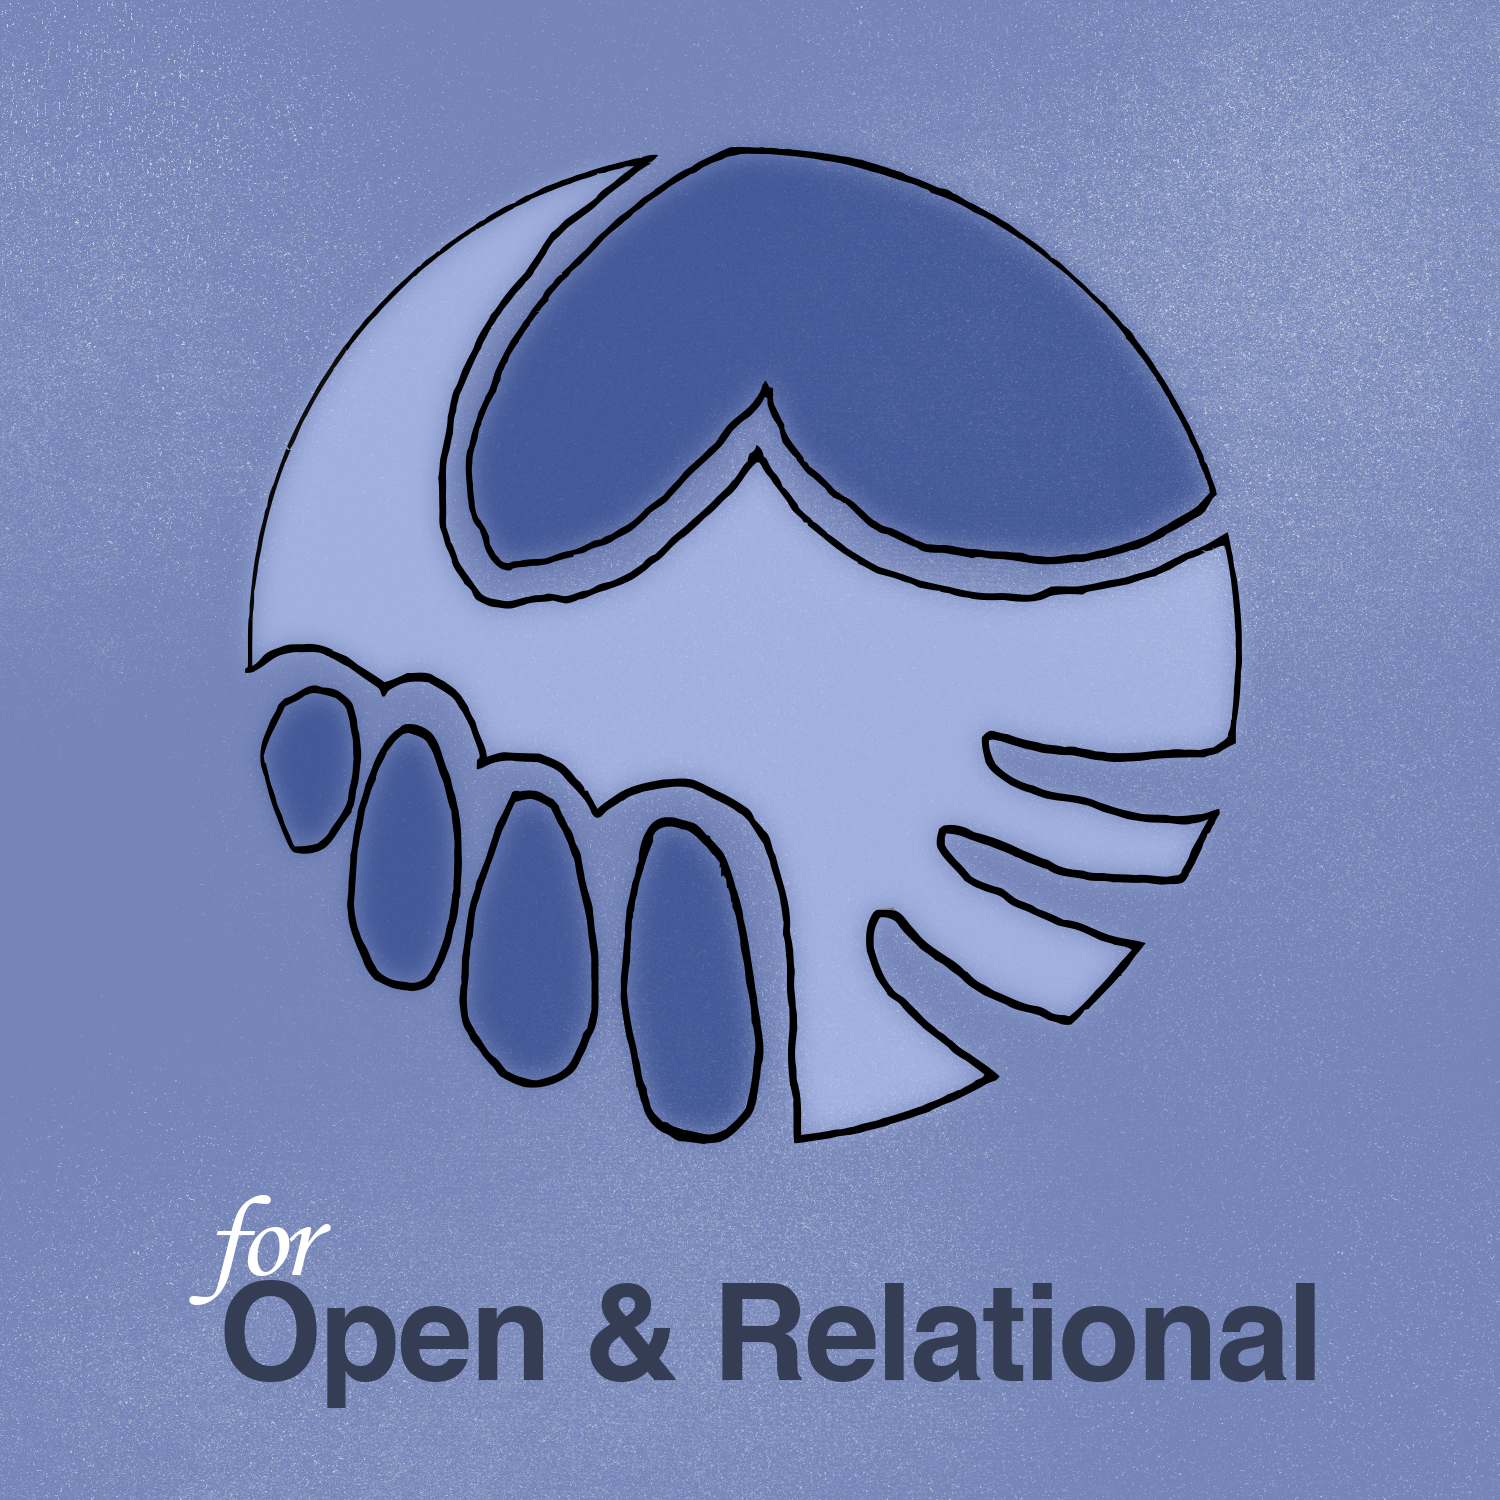 O is for Open & Relational